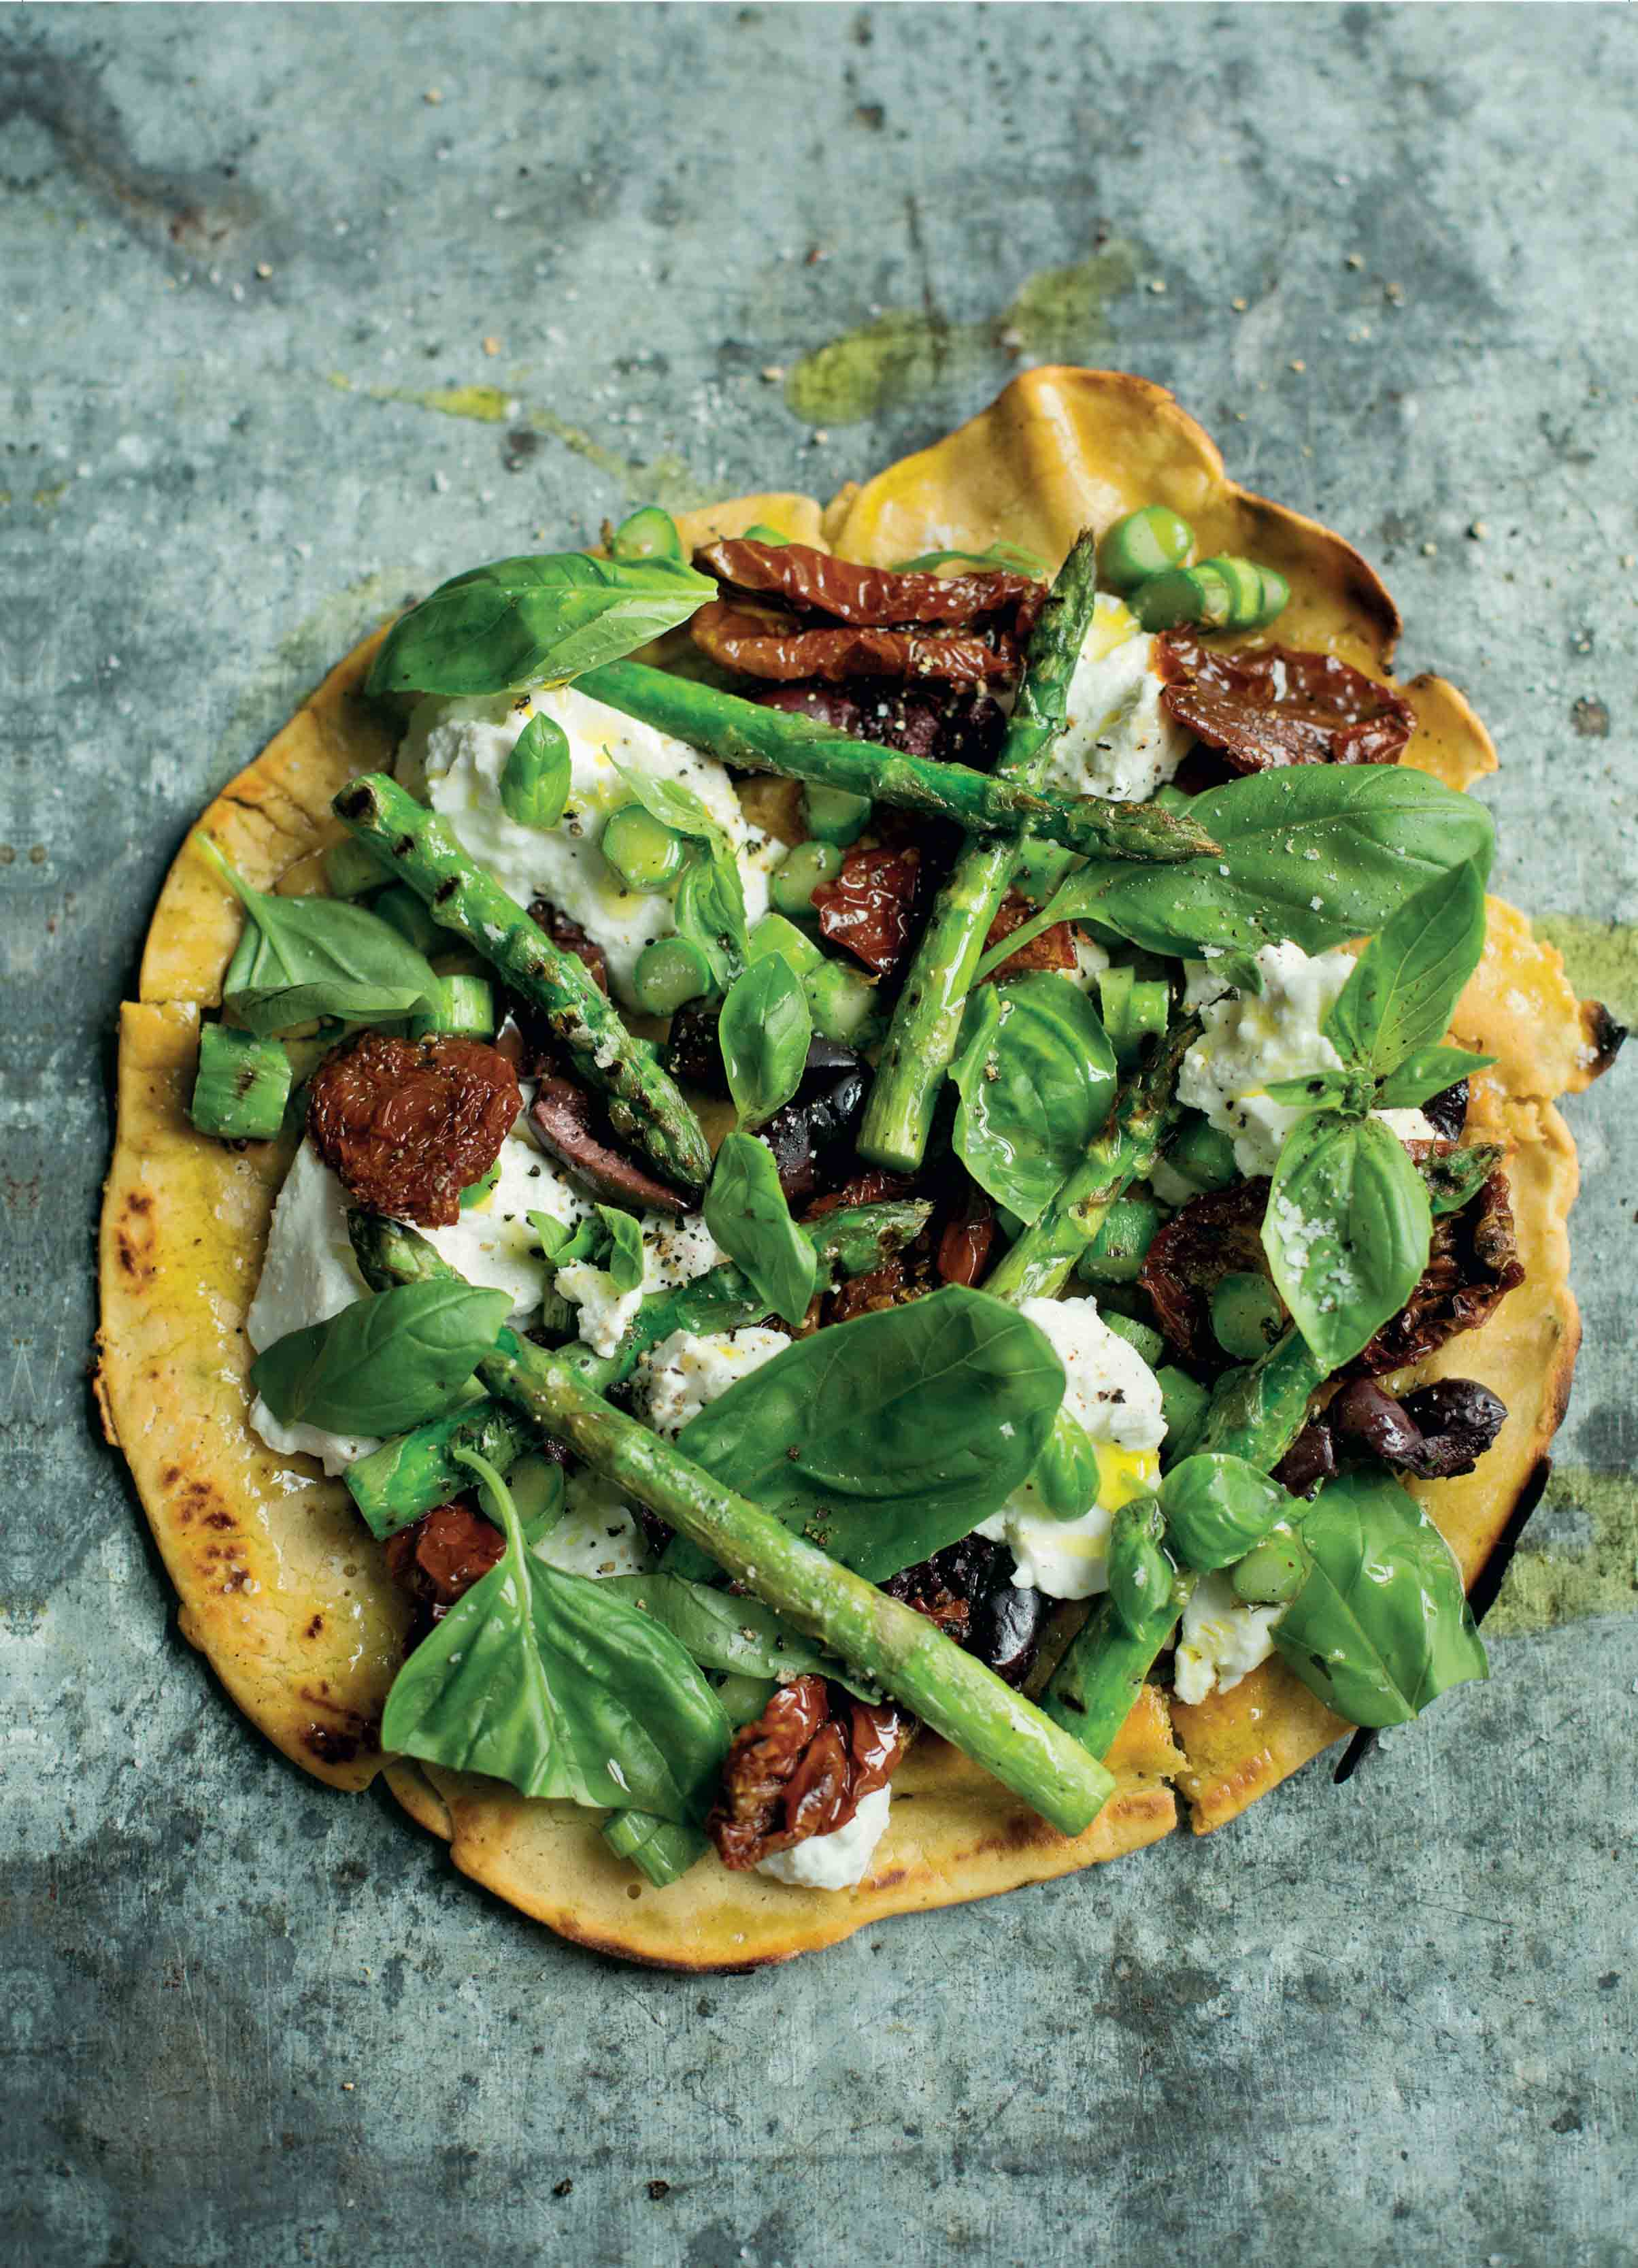 Socca pizza with char-grilled asparagus, olives and ricotta